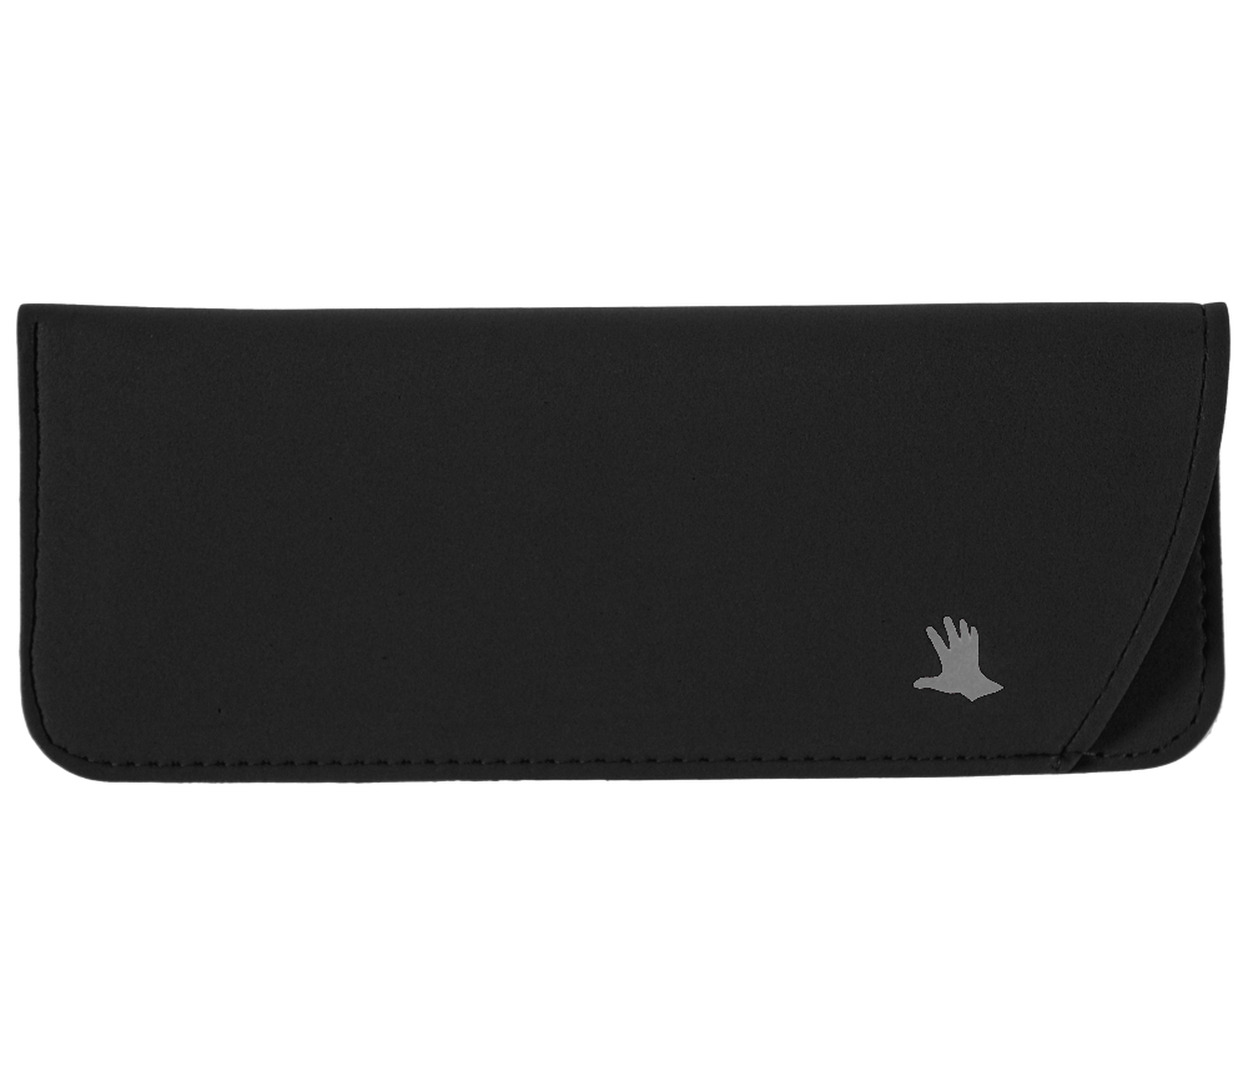 Case - Florida (Black)